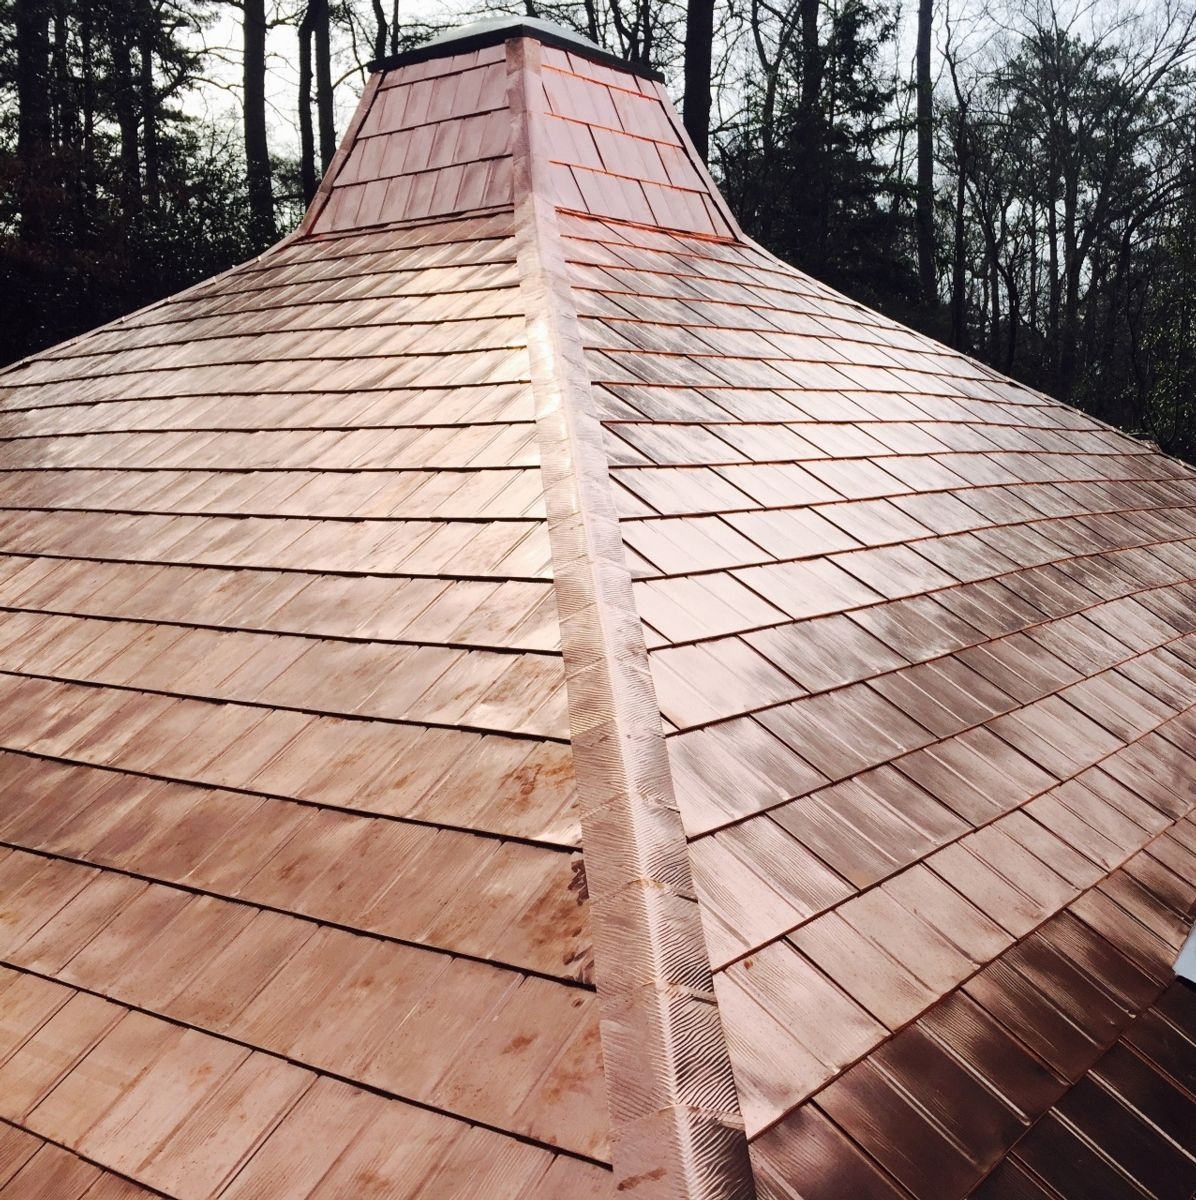 Copper roofing 478 745 6563 for Most expensive roof material